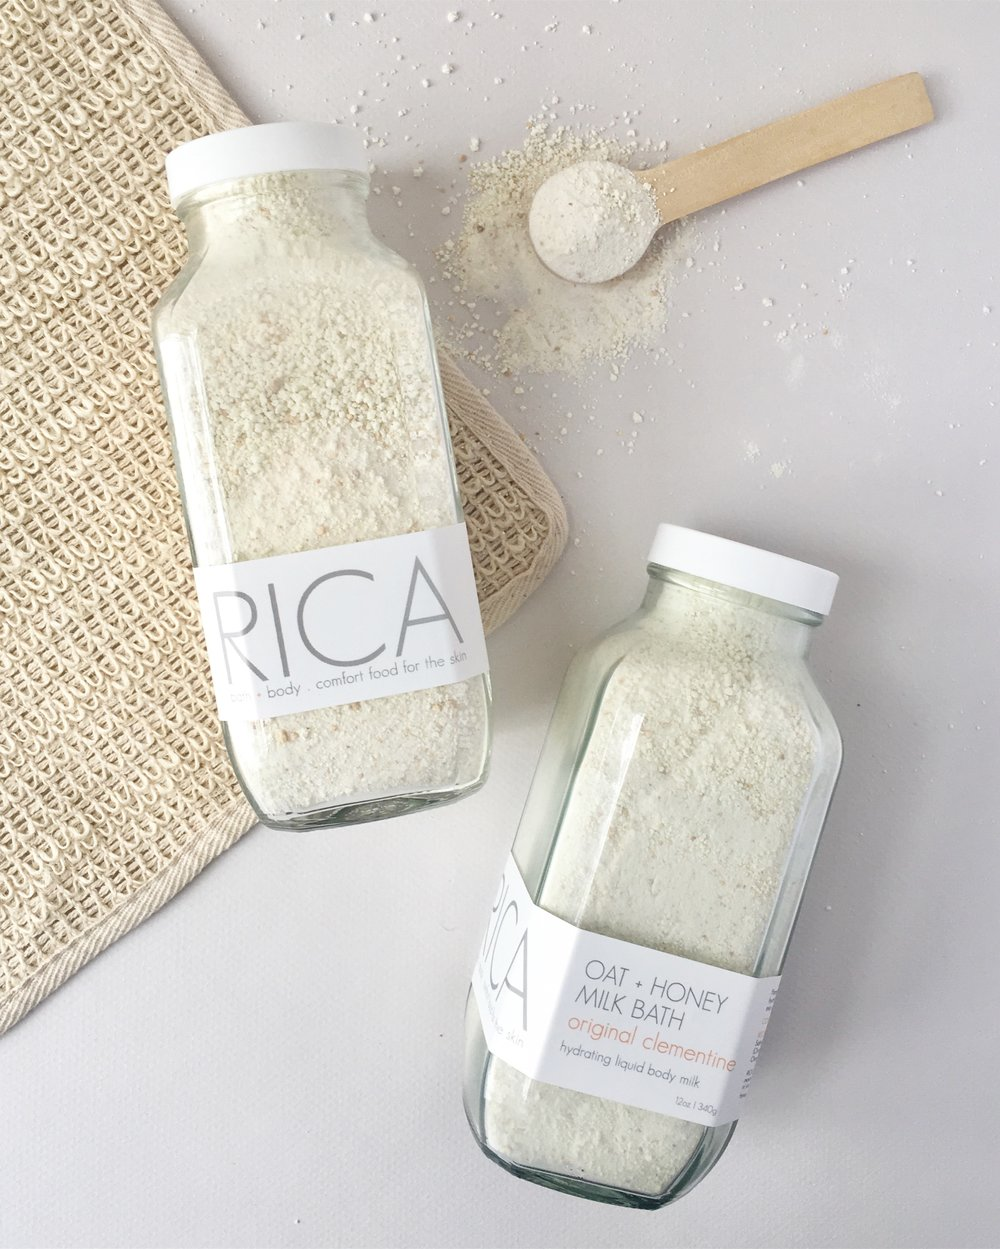 RICA bath + body Oat + Honey Milk Bath Original Clementine Tall 2 jars with spoon.JPG